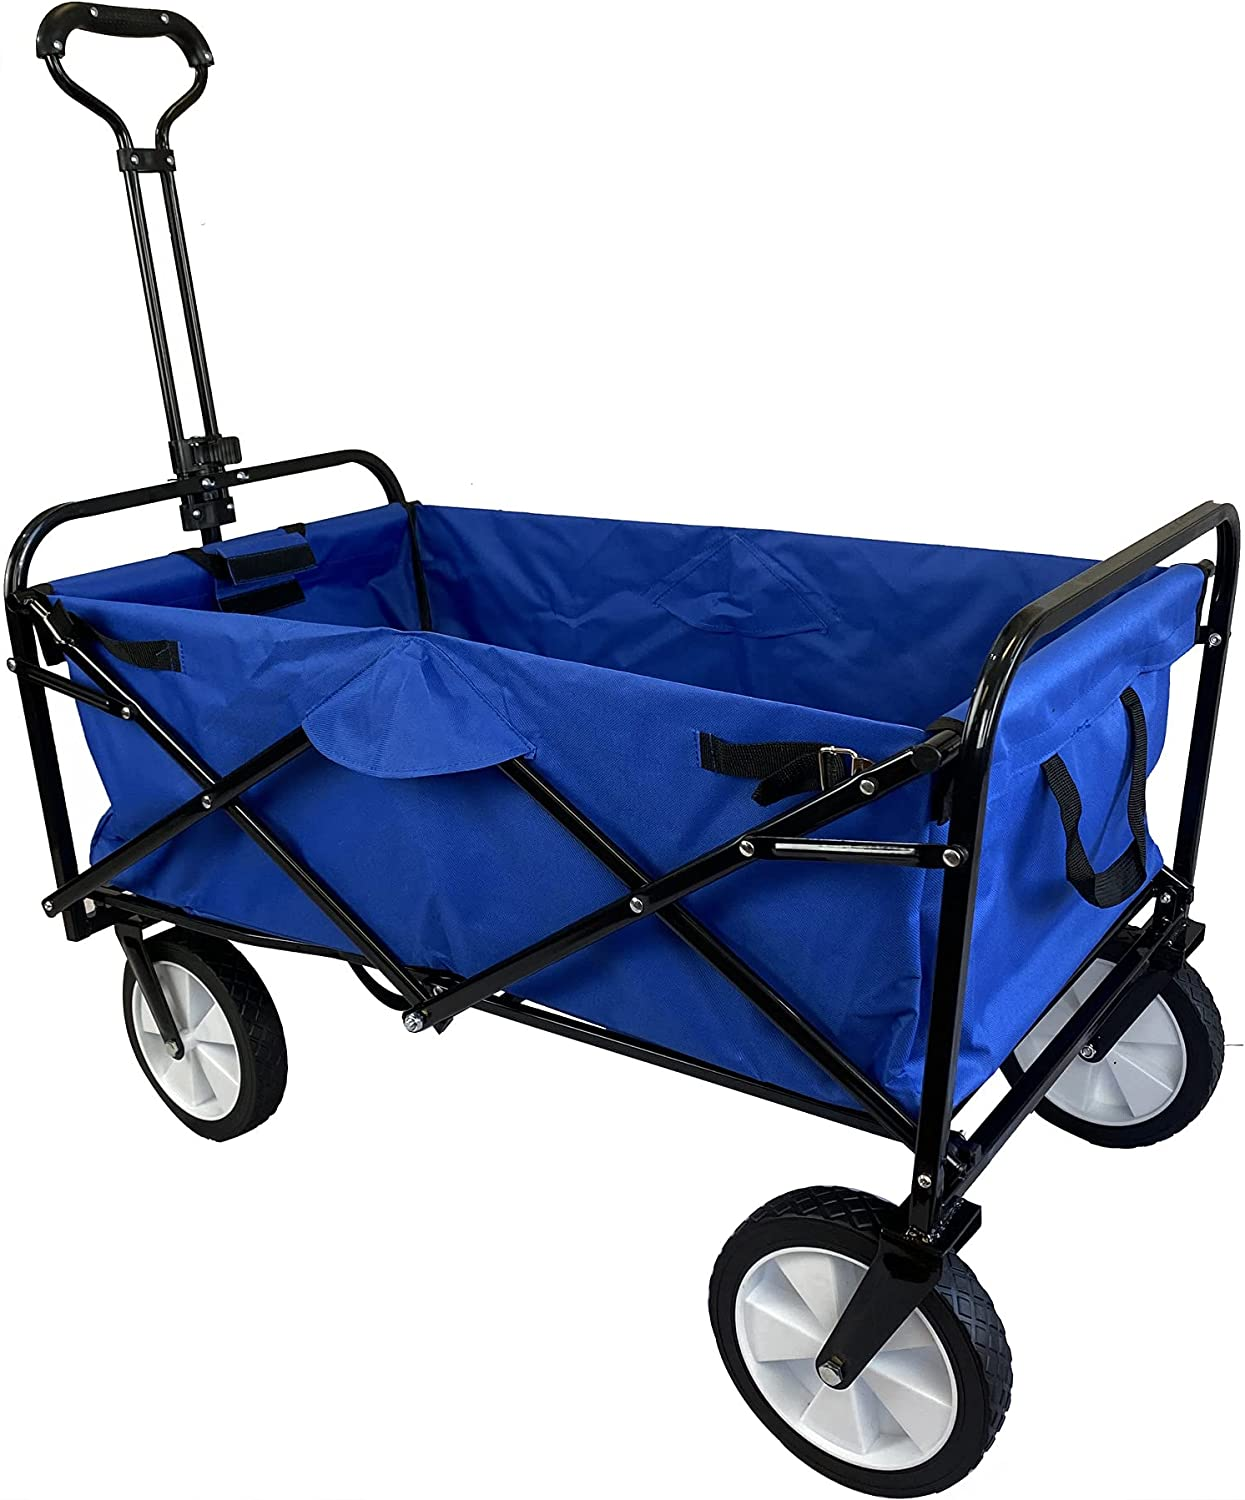 Meda Collapsible New mail order Popular standard Folding Outdoor Cart Utility Wagon Blue